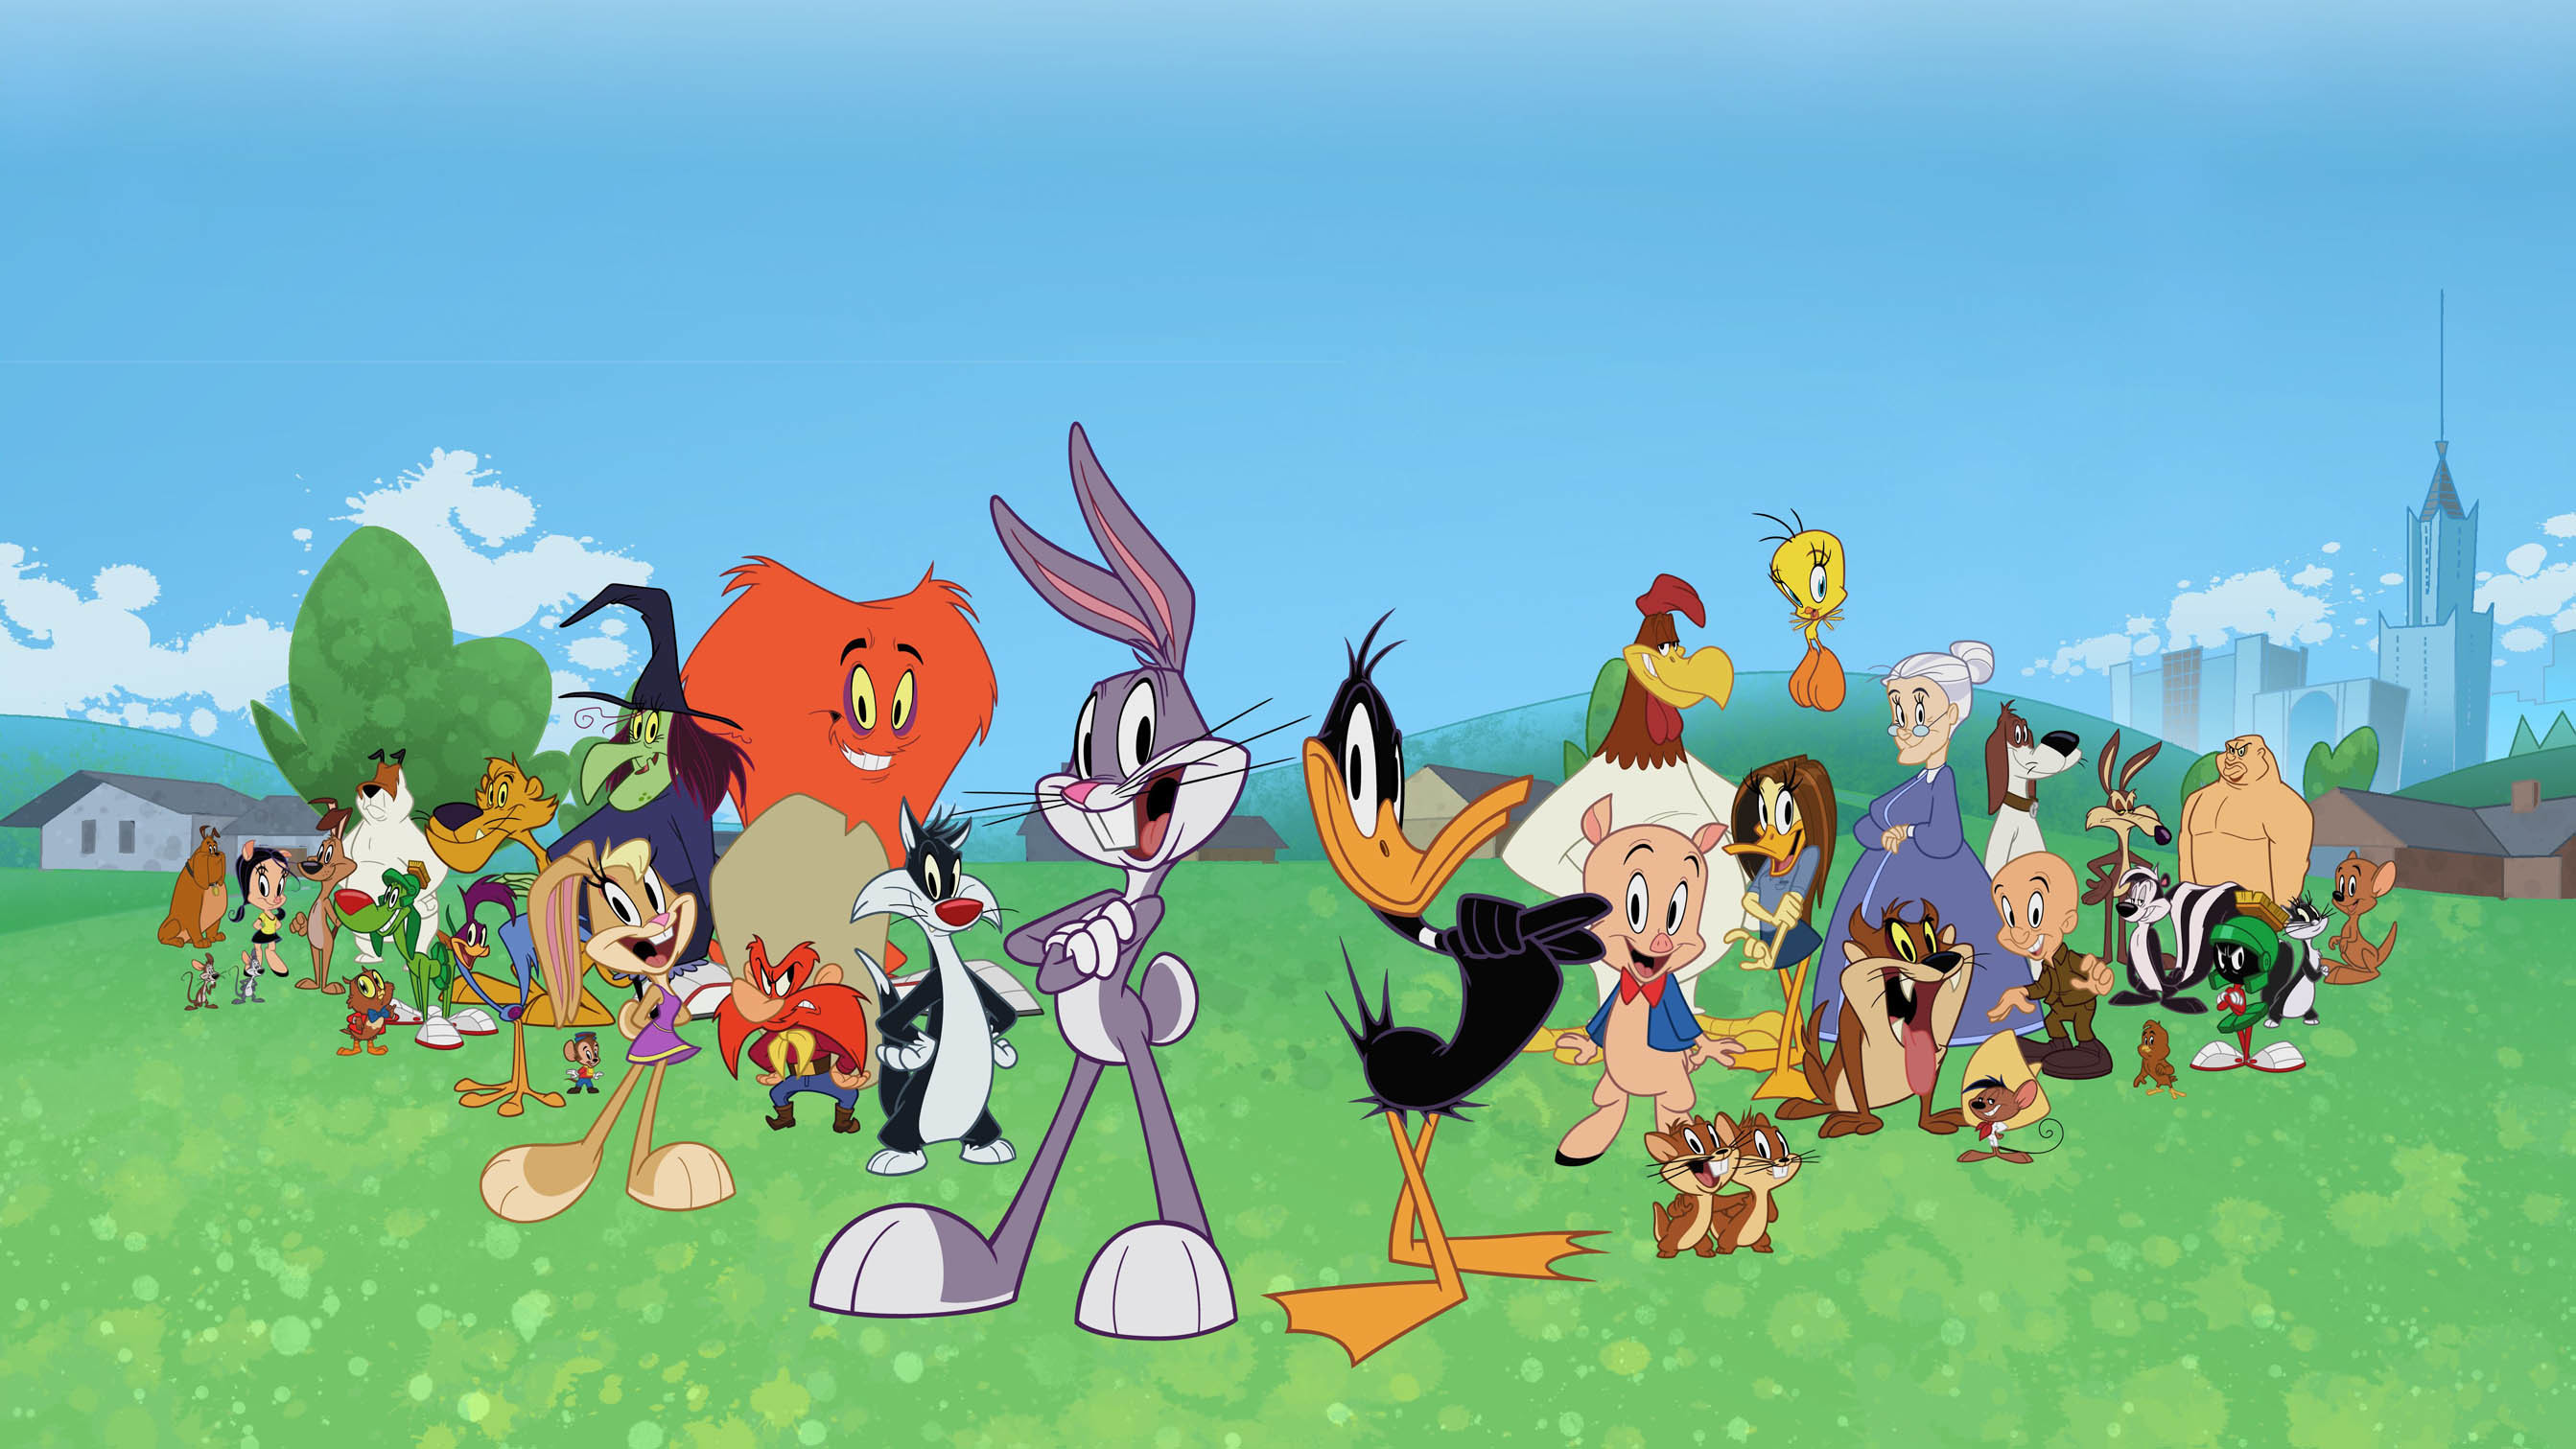 Res: 2686x1511, Season 1 | The Looney Tunes Show | 9Jumpin